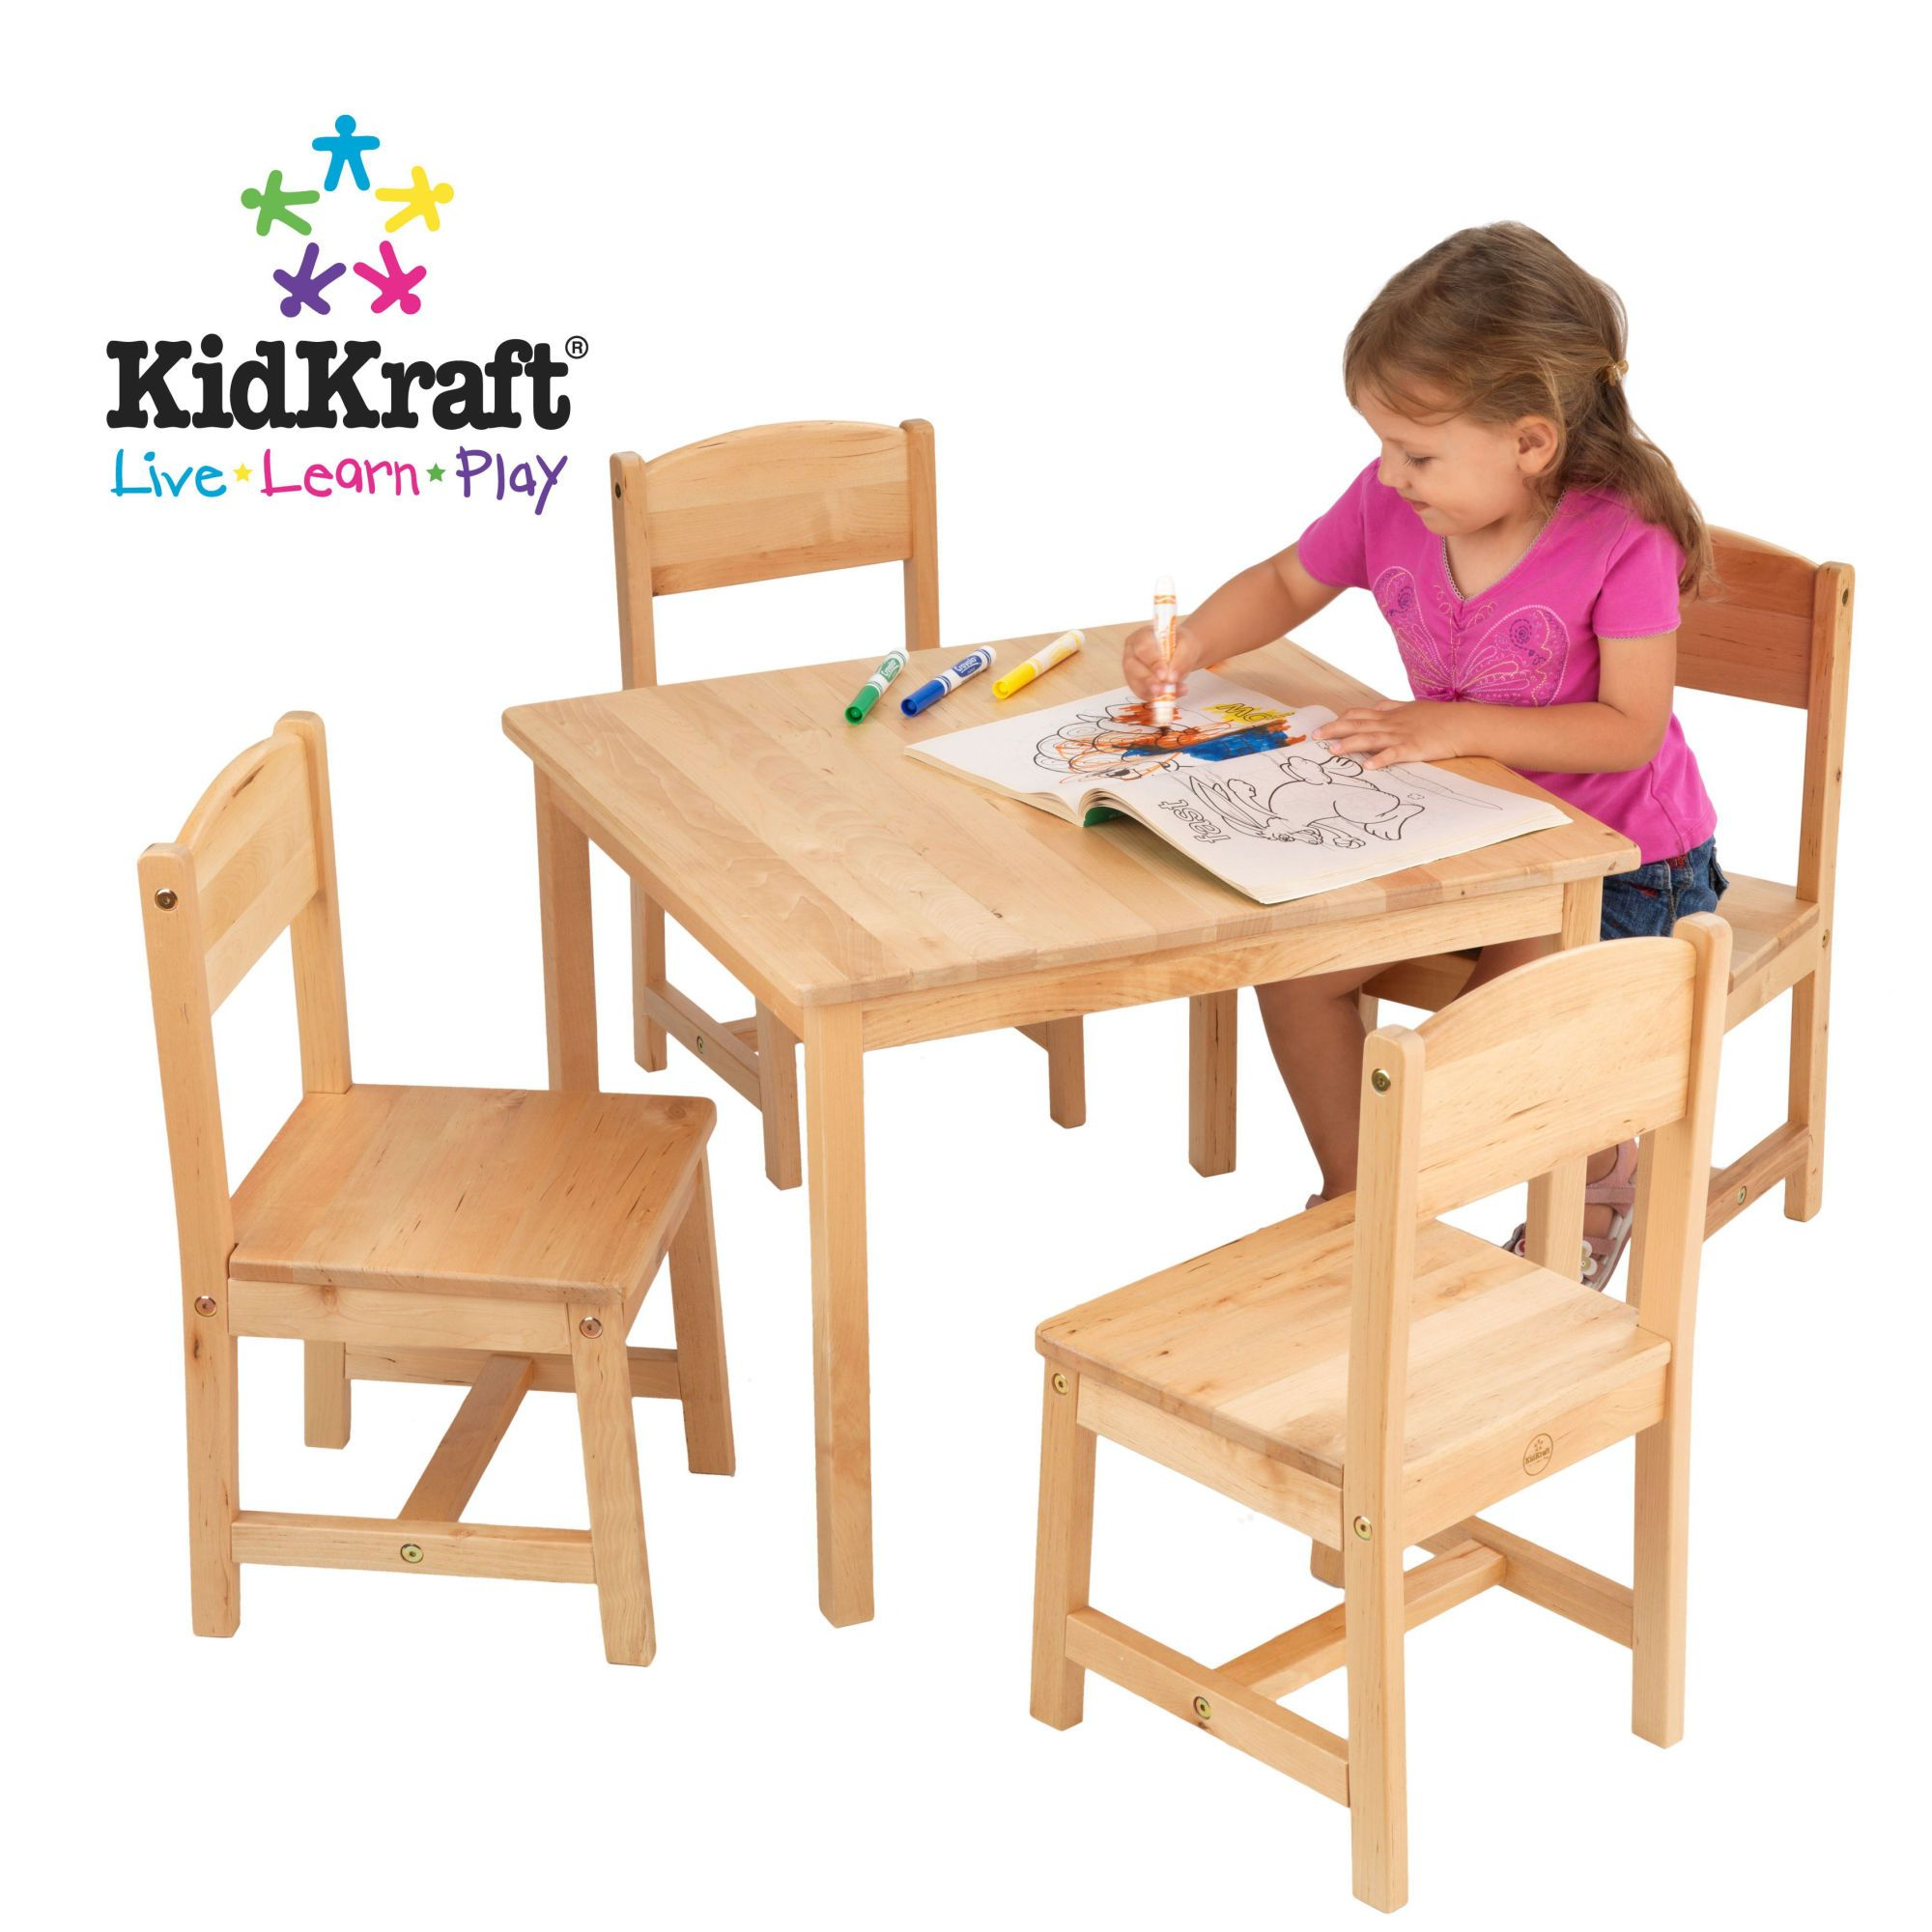 Farmhouse Kids 5 Piece Square Table and Chair Set Wooden